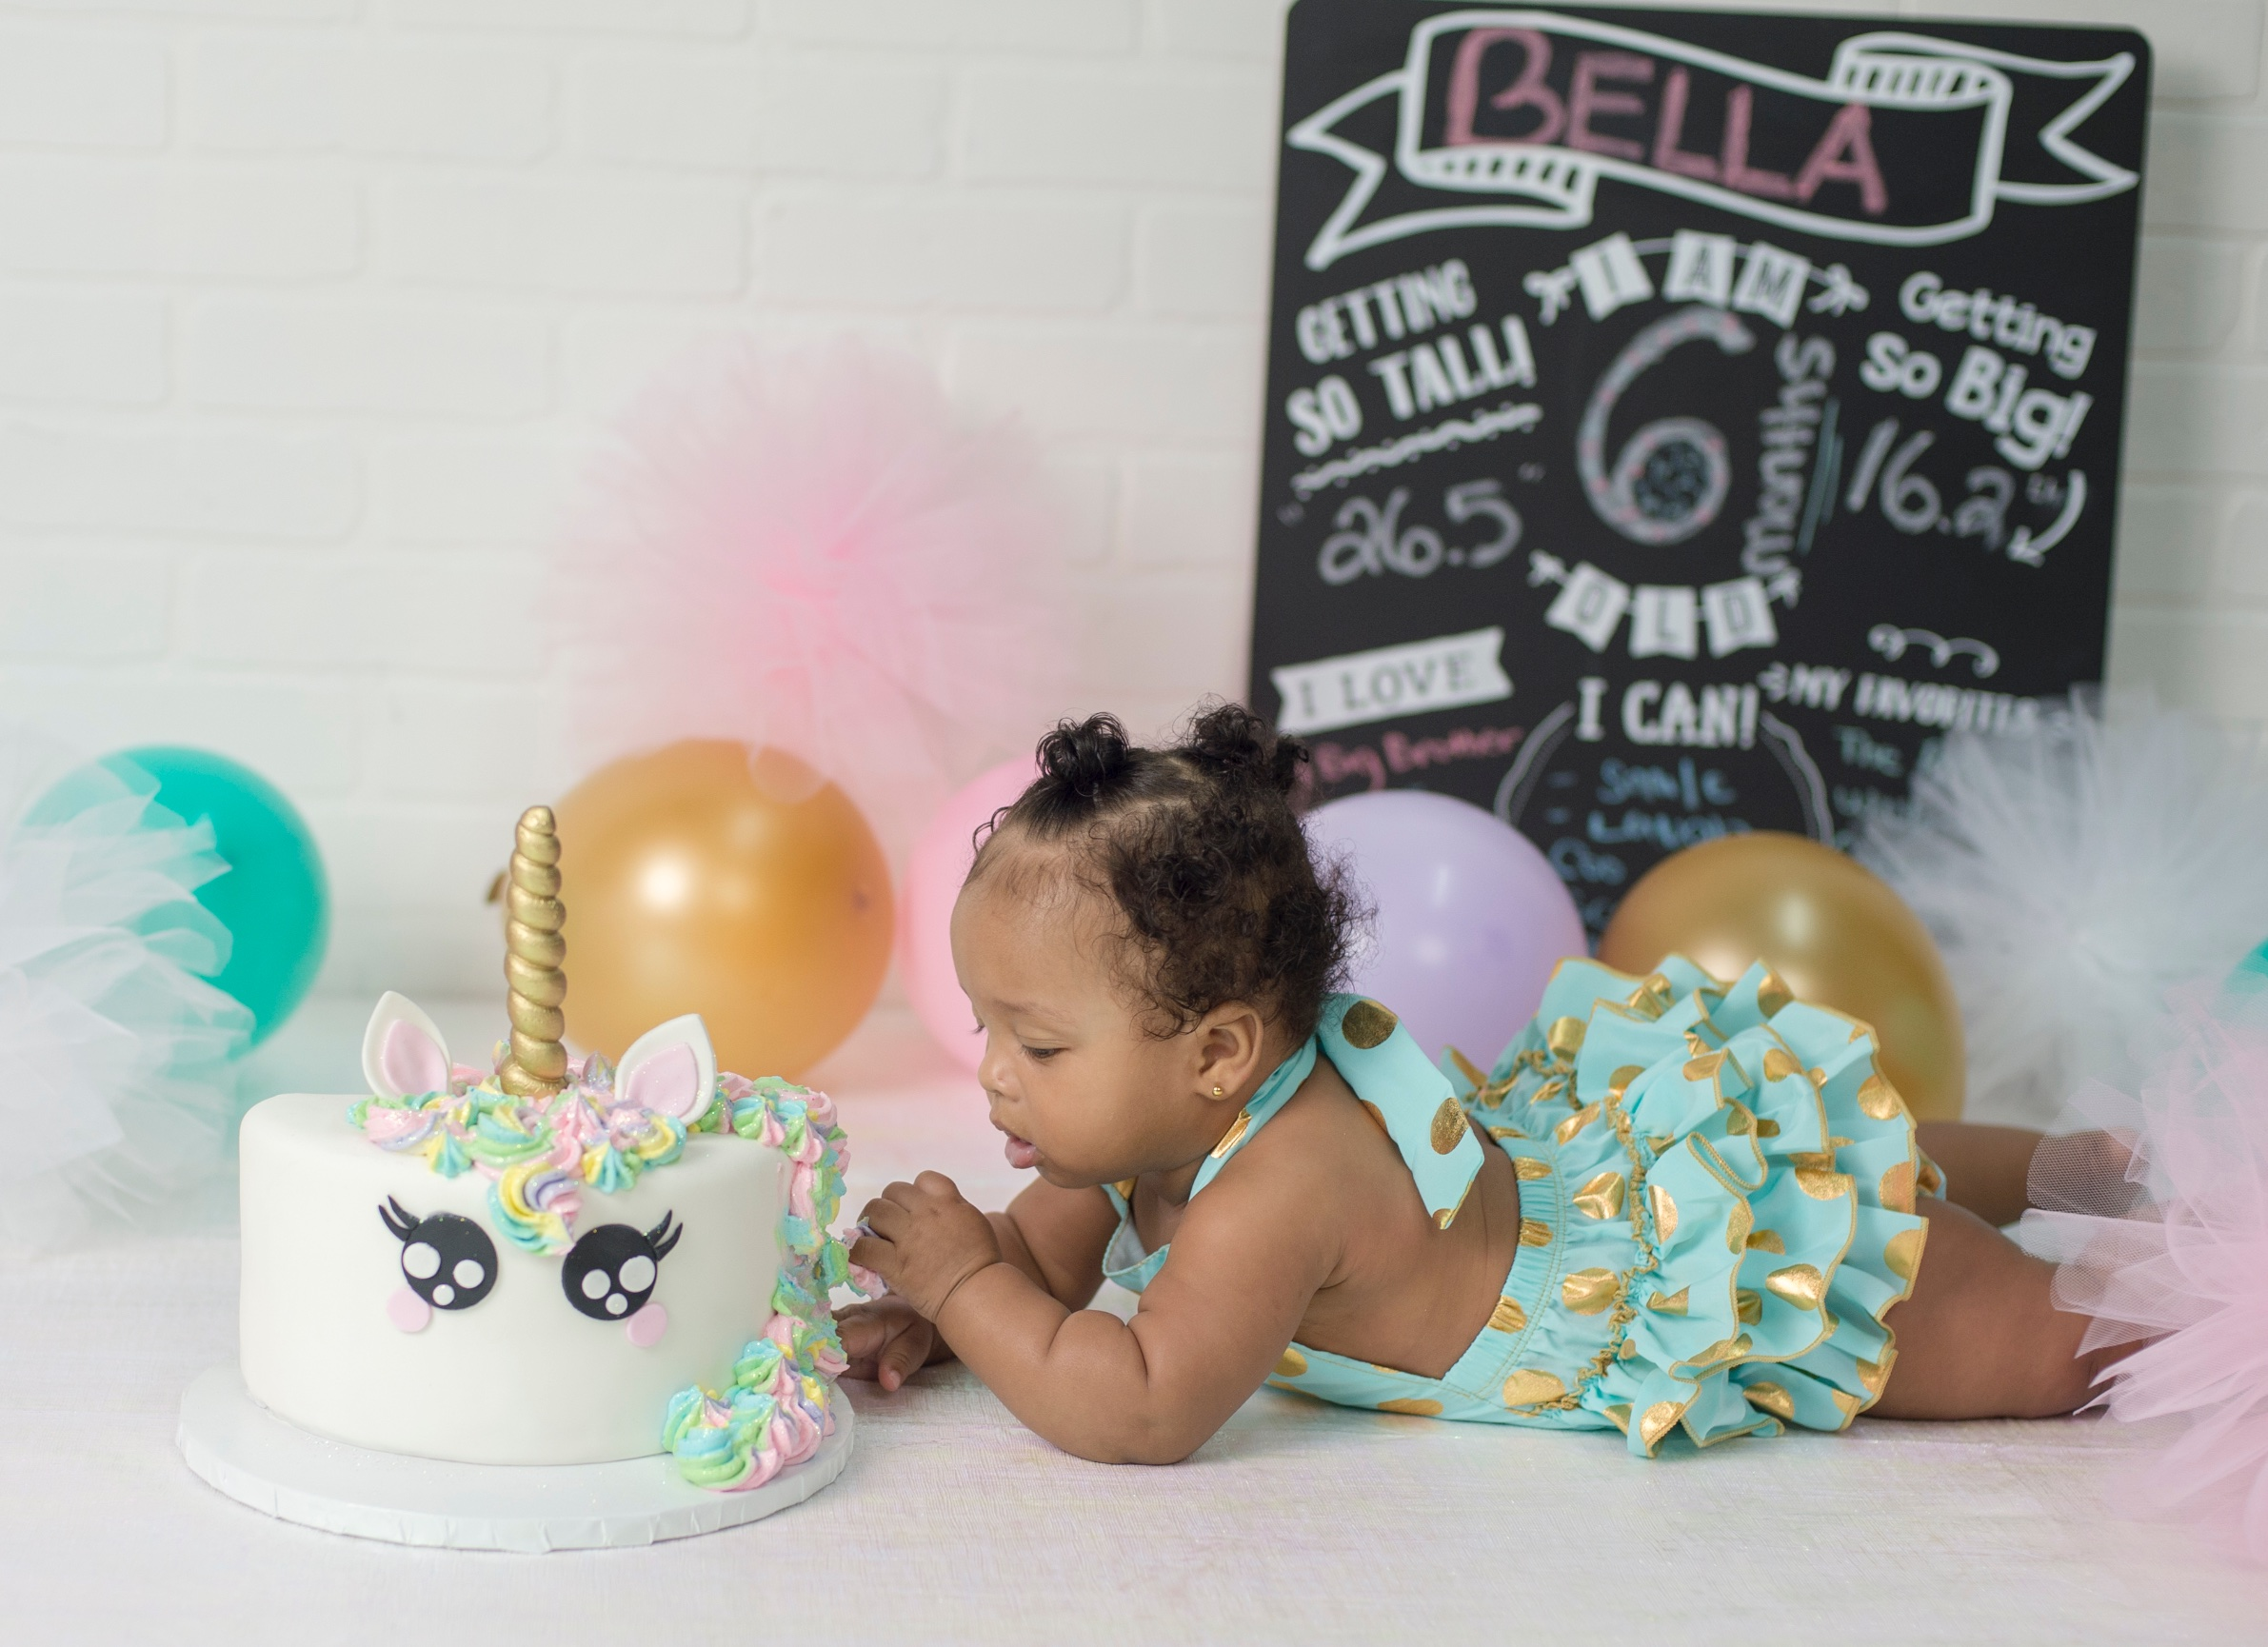 6 Month Milestone Photo Session Mom Bought This Beautiful 1 2 Cake Decorated As A Unicorn Bella Had No Problem Enjoying Her Smash Party